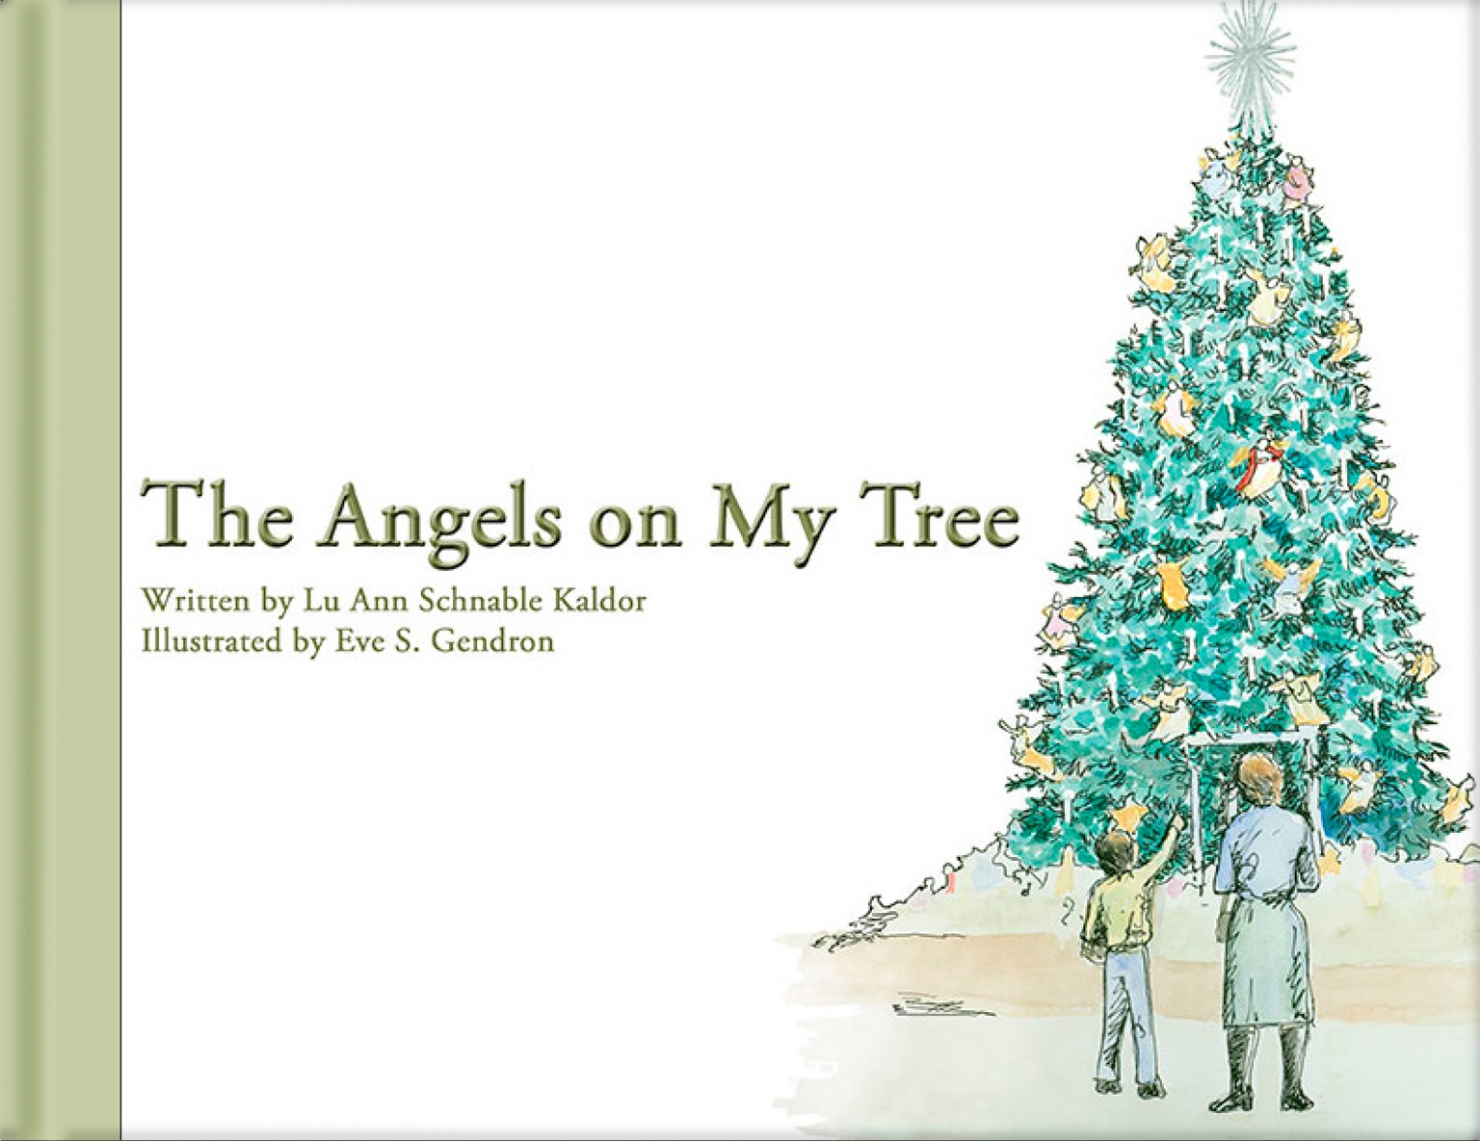 """...quiet prose and airy artwork carry the message about letting go and moving forward.""   –  Publisher's Weekly      ""This touching story will bring the true meaning of Christmas to every heart.""   – Debbie Macomber, #1  New York Times  Best-Selling Author     "" The Angels on My Tree  is a truly touching story, and so beautifully rendered.""   – Emily Rafferty, President, The Metropolitan Museum of Art     ""This story reminds us all that Christmas is a season of great hope. ... discover anew the gift we truly receive when we give to others.""   – Timothy Michael Cardinal Dolan, Archbishop of New York     ""The theme is universal. It will resonate with families facing loss of a loved one, divorce, or even just being apart at the holiday season.""   – Lauren Arbolino, Ph.D. Nationwide Children's Hospital     "" The Angels on My Tree  has a mythic quality that speaks to the human soul.""   – Reverend Jean Campbell, Trinity Episcopal Church, Fishkill, NY     ""Reading the book with two students who lost their mother gently opened up an opportunity for a discussion of feelings of grief; and more importantly they heard a strong and beautiful message of hope and resiliency.""   – Joanne Shaffer, LCSW, certified school social worker     Inspiring story about ... a new and meaningful Christmas tradition. ... recommended for congregational and school libraries.   – Congregational Libraries Today"